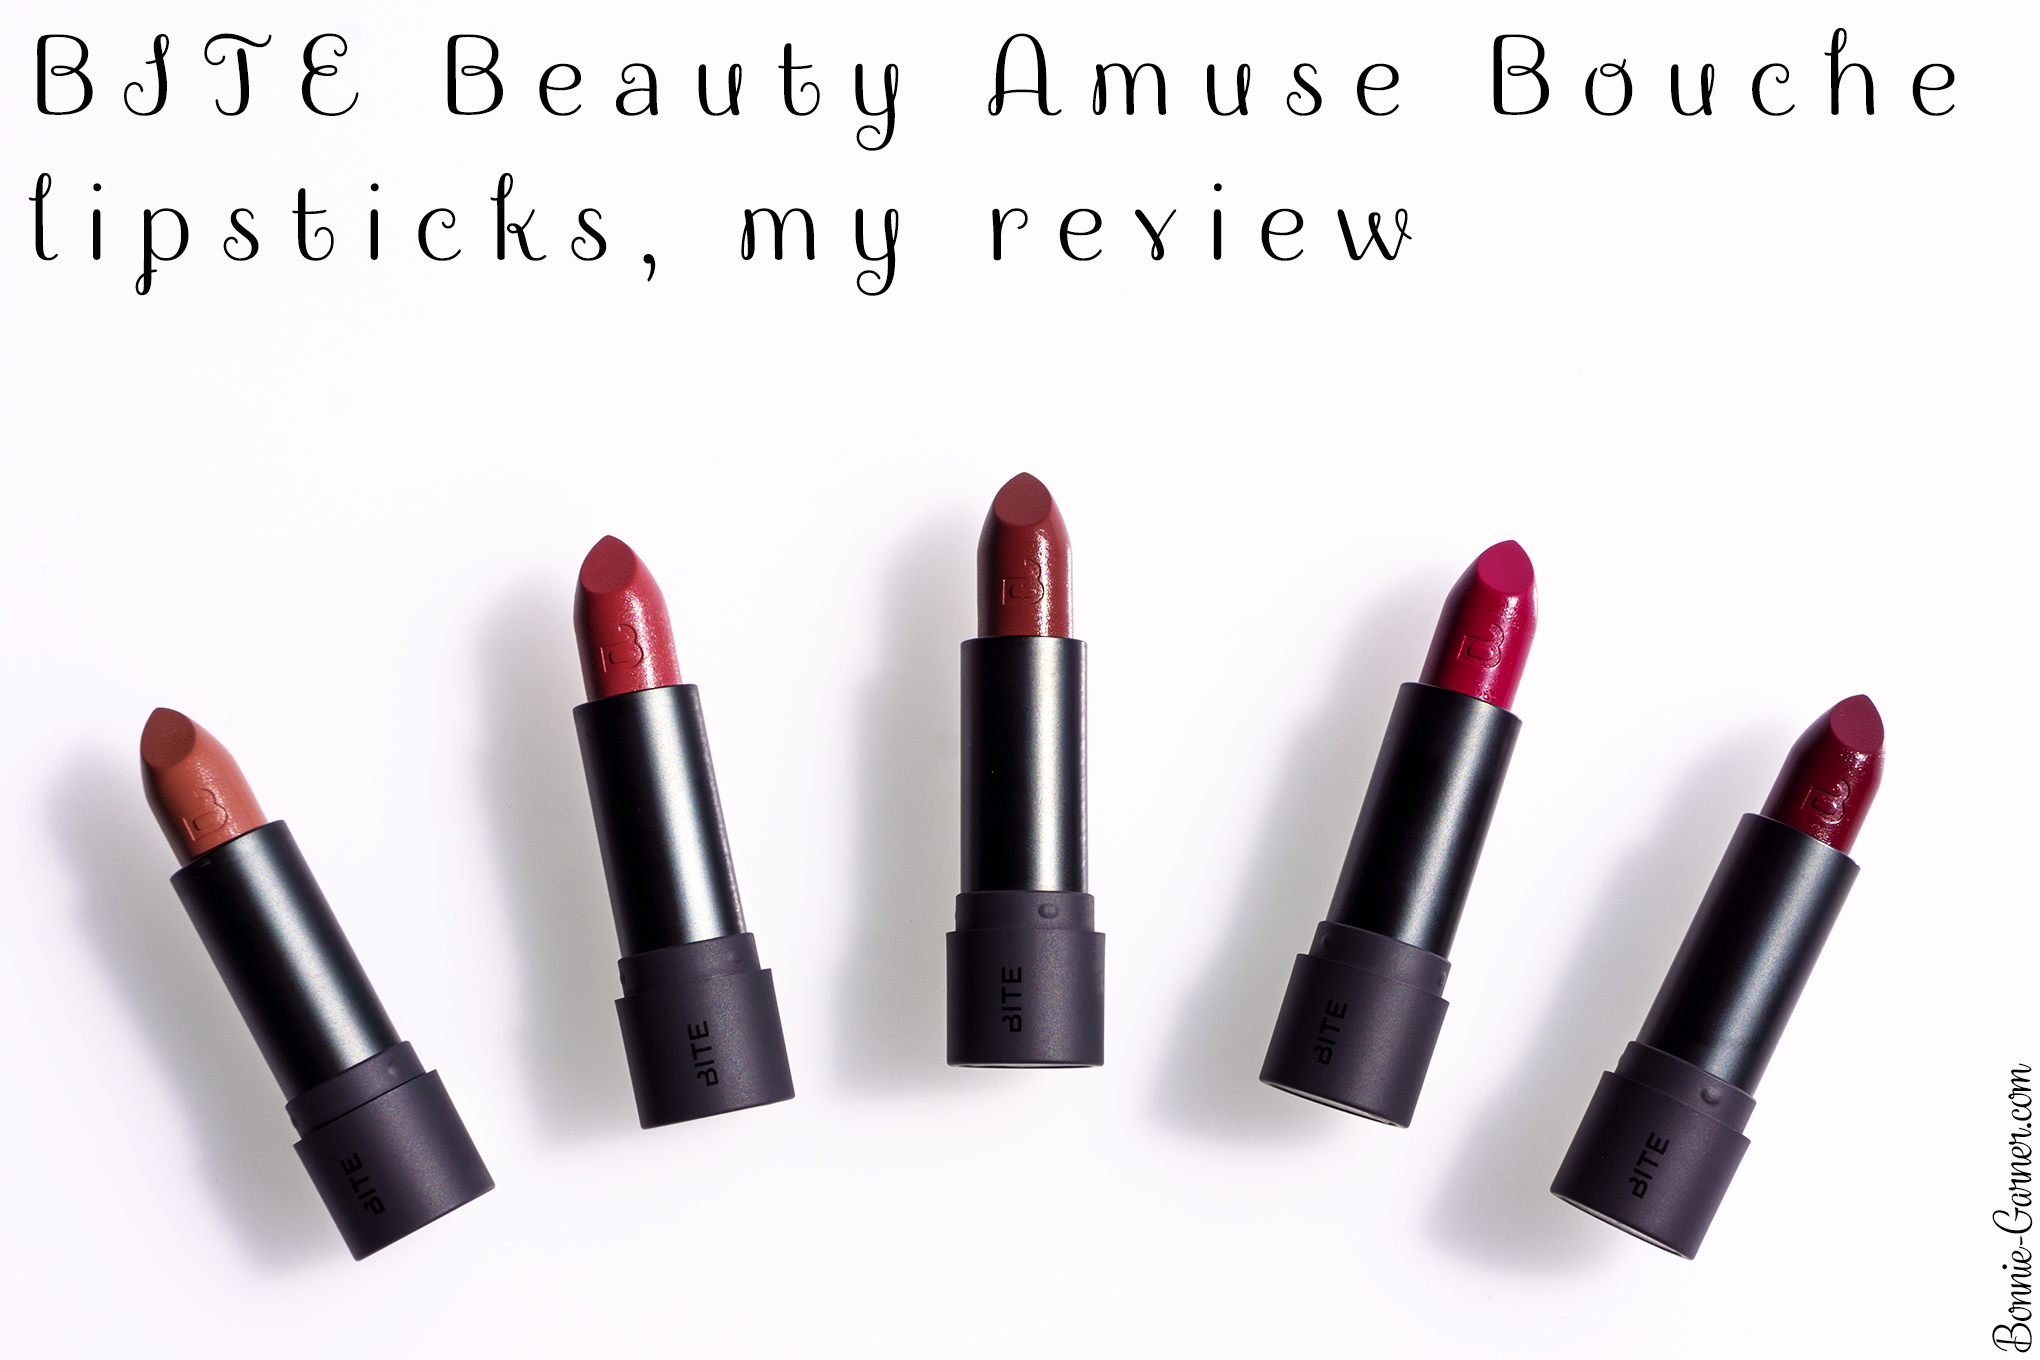 BITE Beauty Amuse Bouche lipsticks, my review